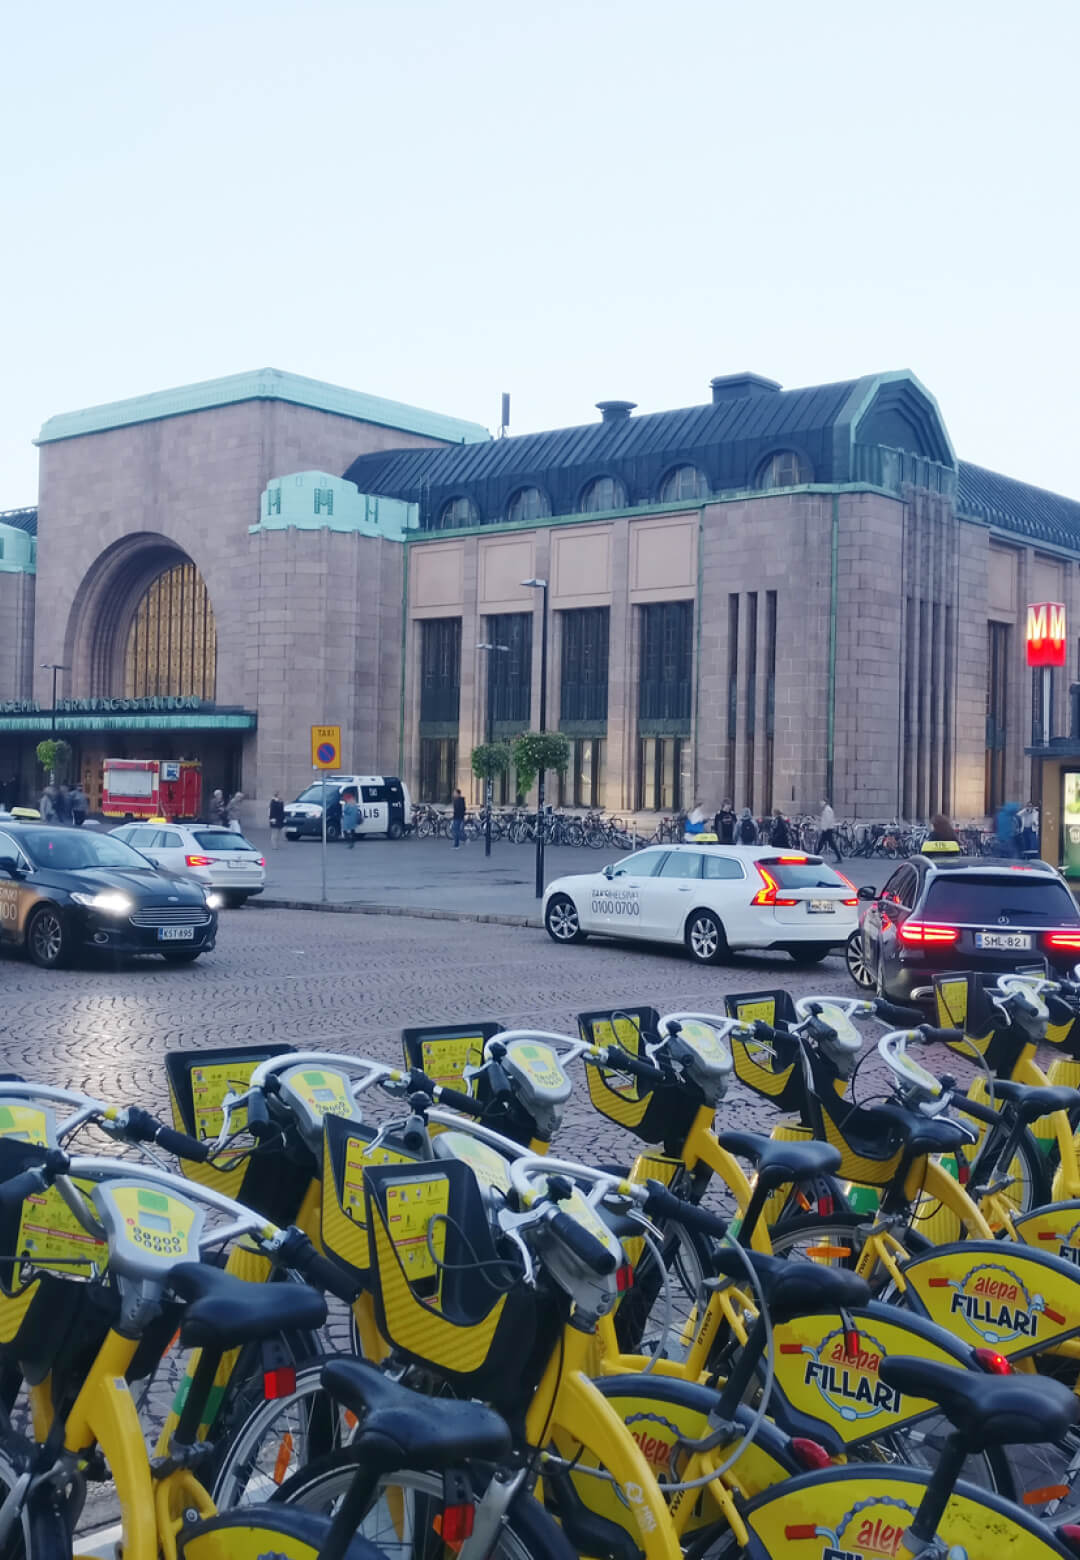 Smart mobility and switching to greener modes of transport is encouraged in Helsinki